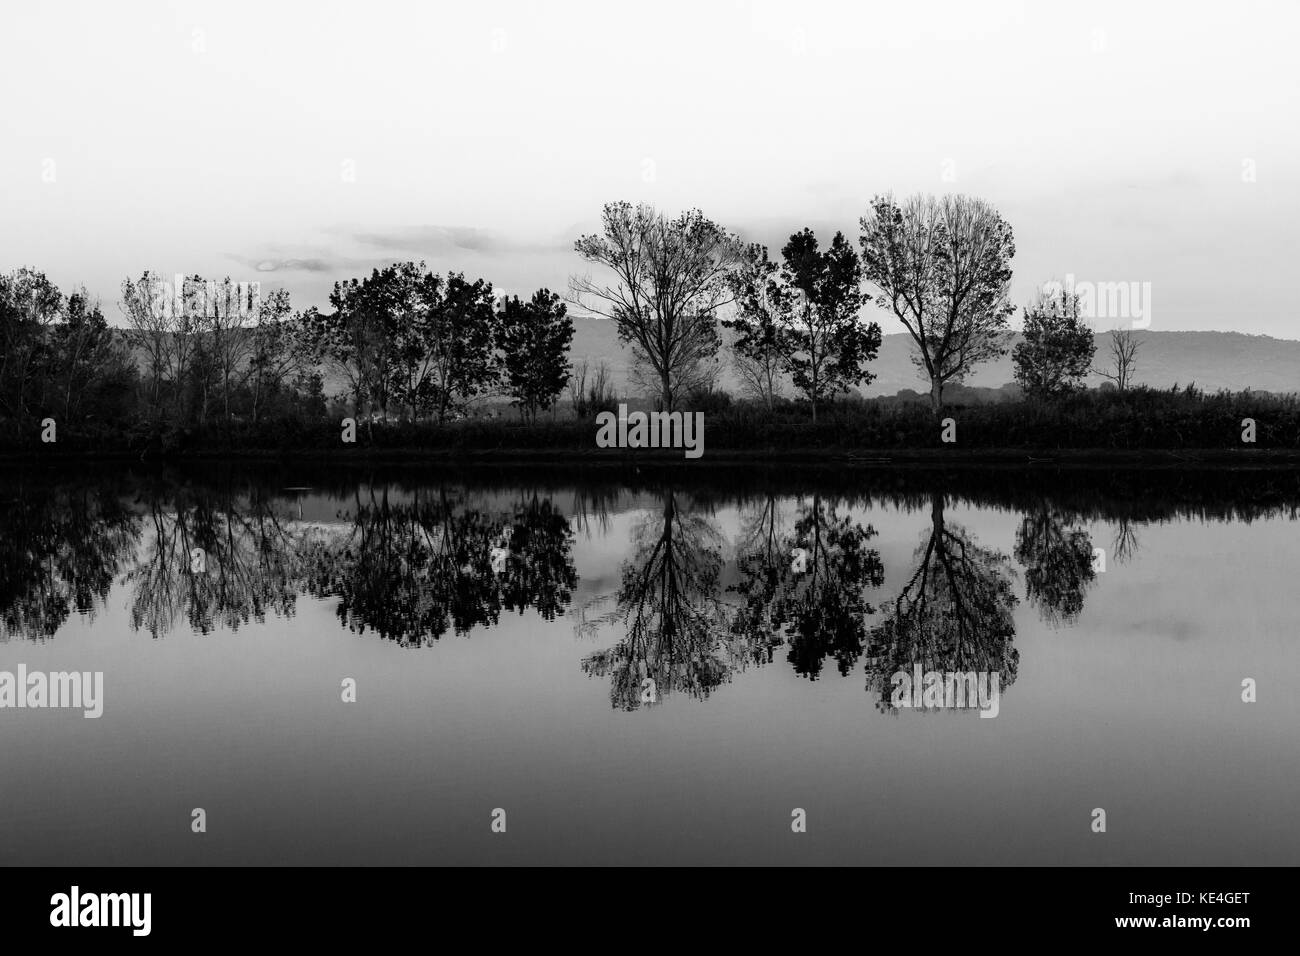 A symmetric photo of a lake, with trees and clouds reflections on water - Stock Image